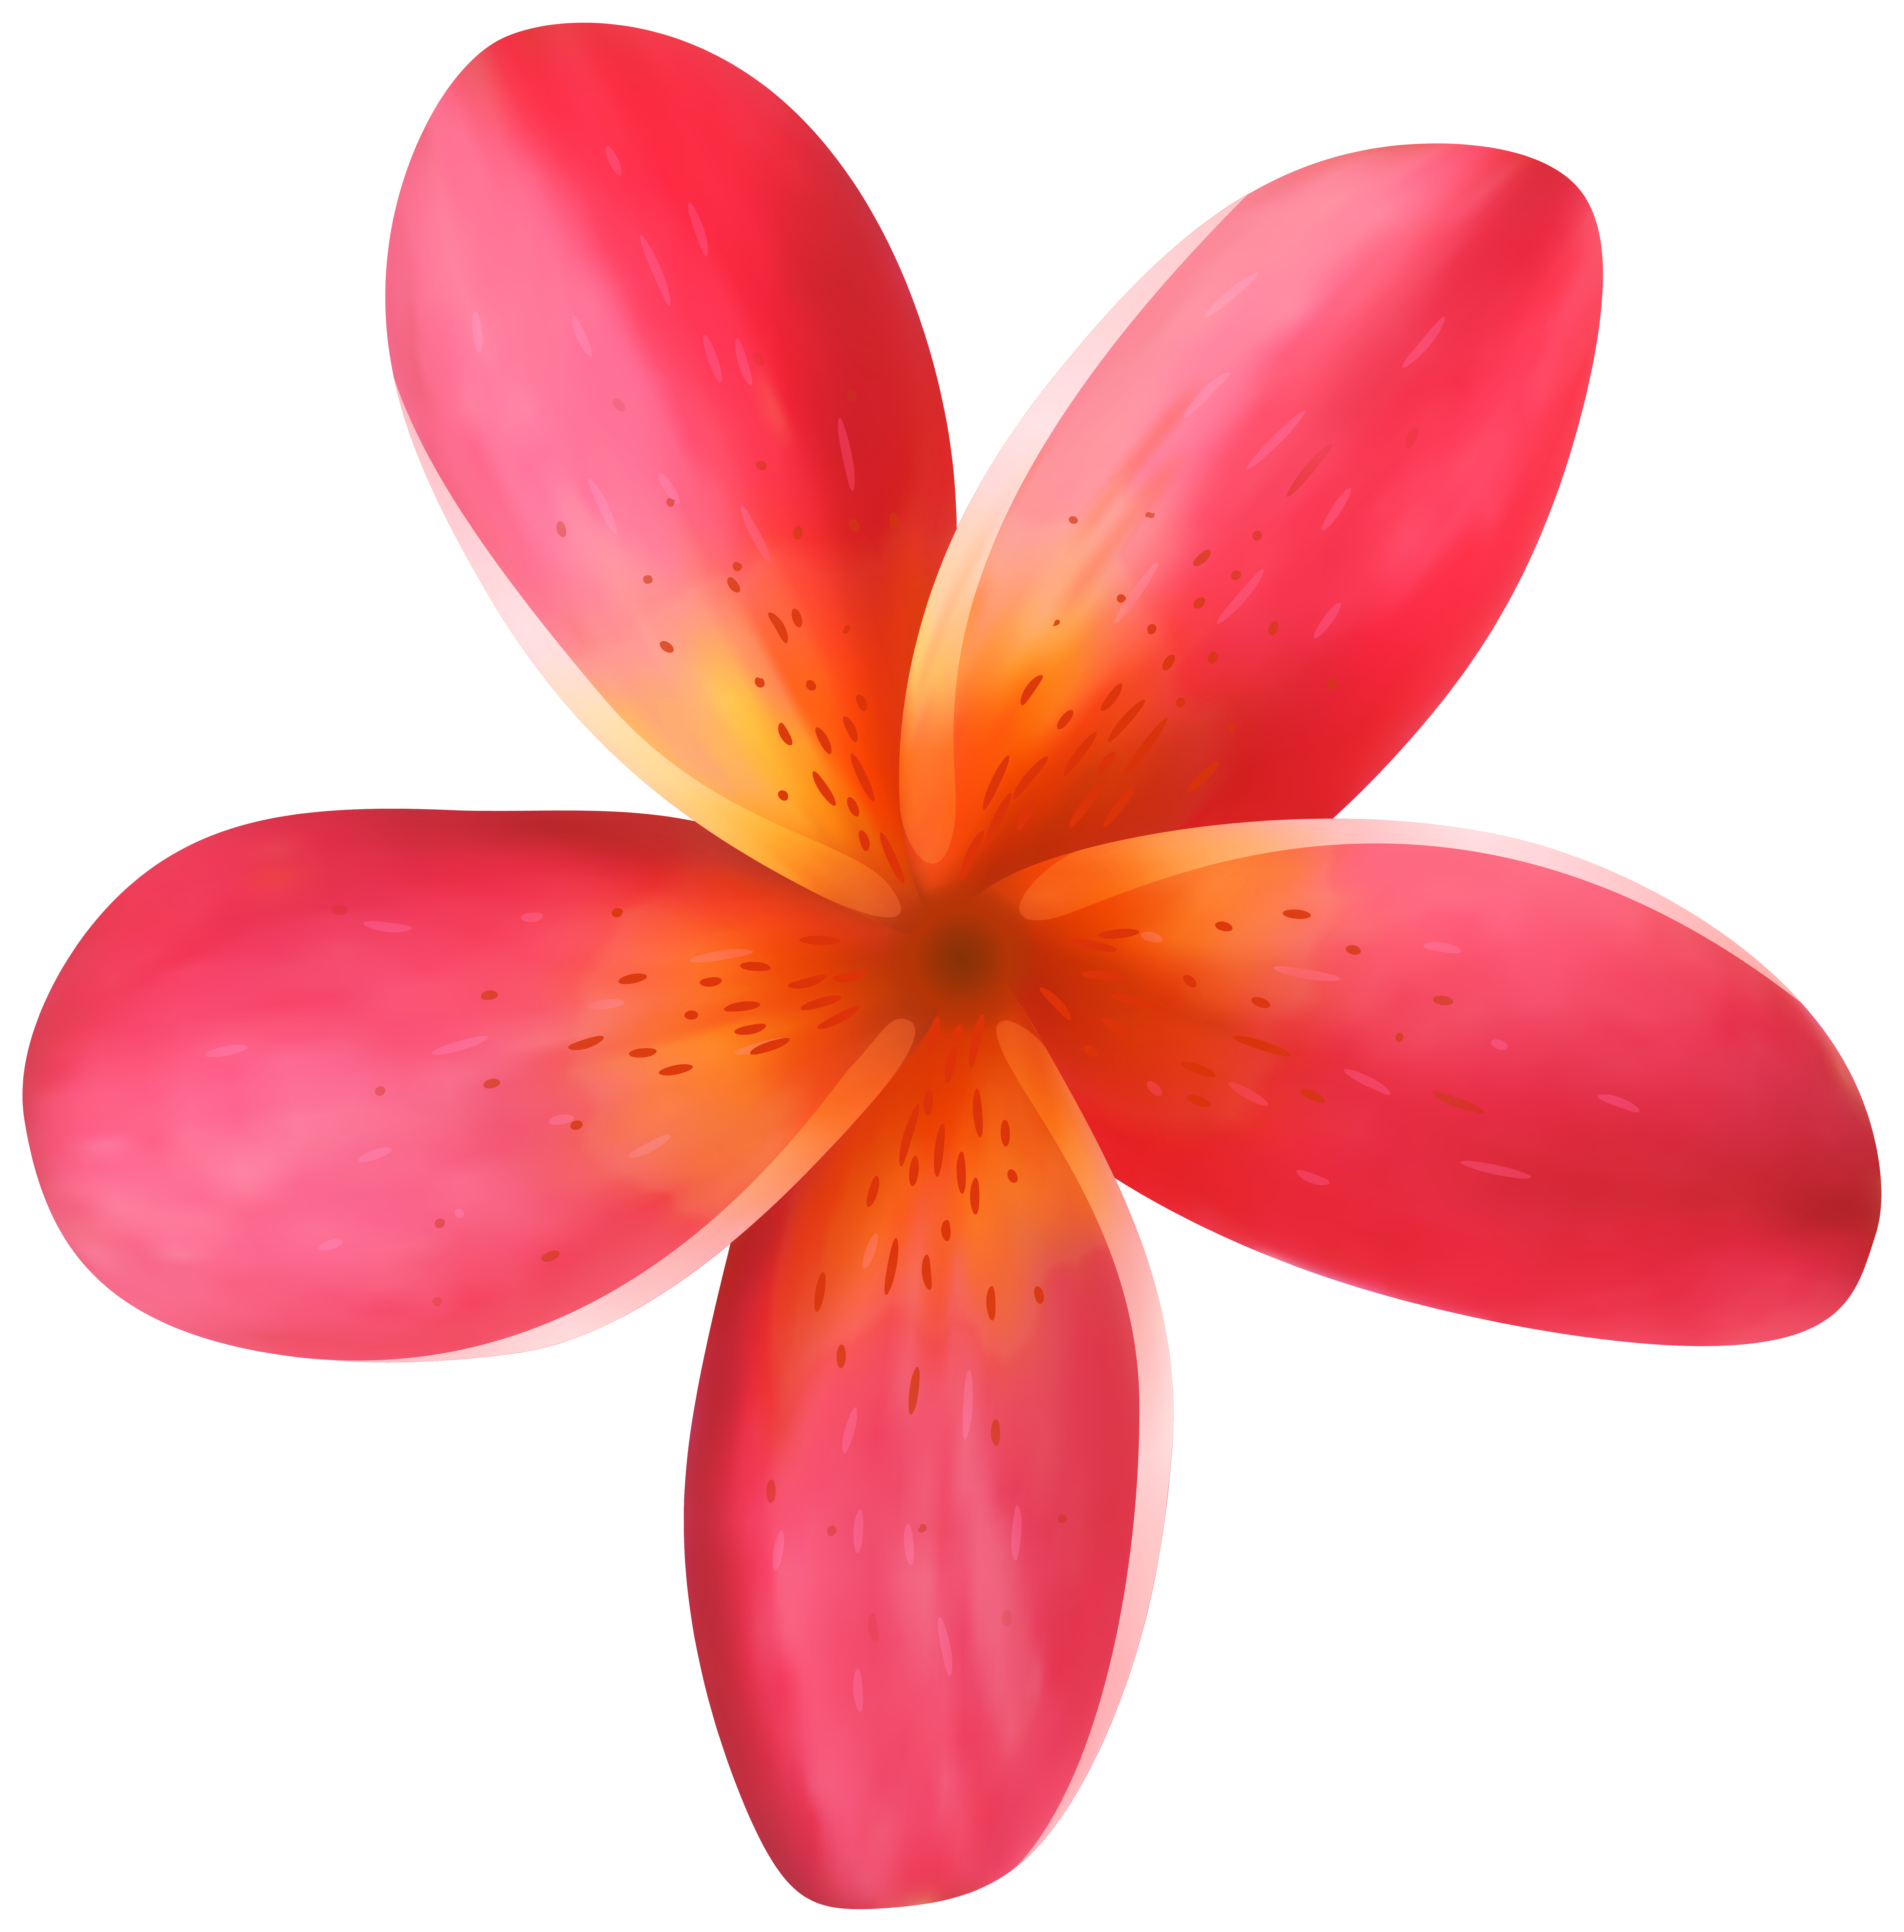 Tropical Flower PNG Clip Art Image | Gallery Yopriceville - High ...